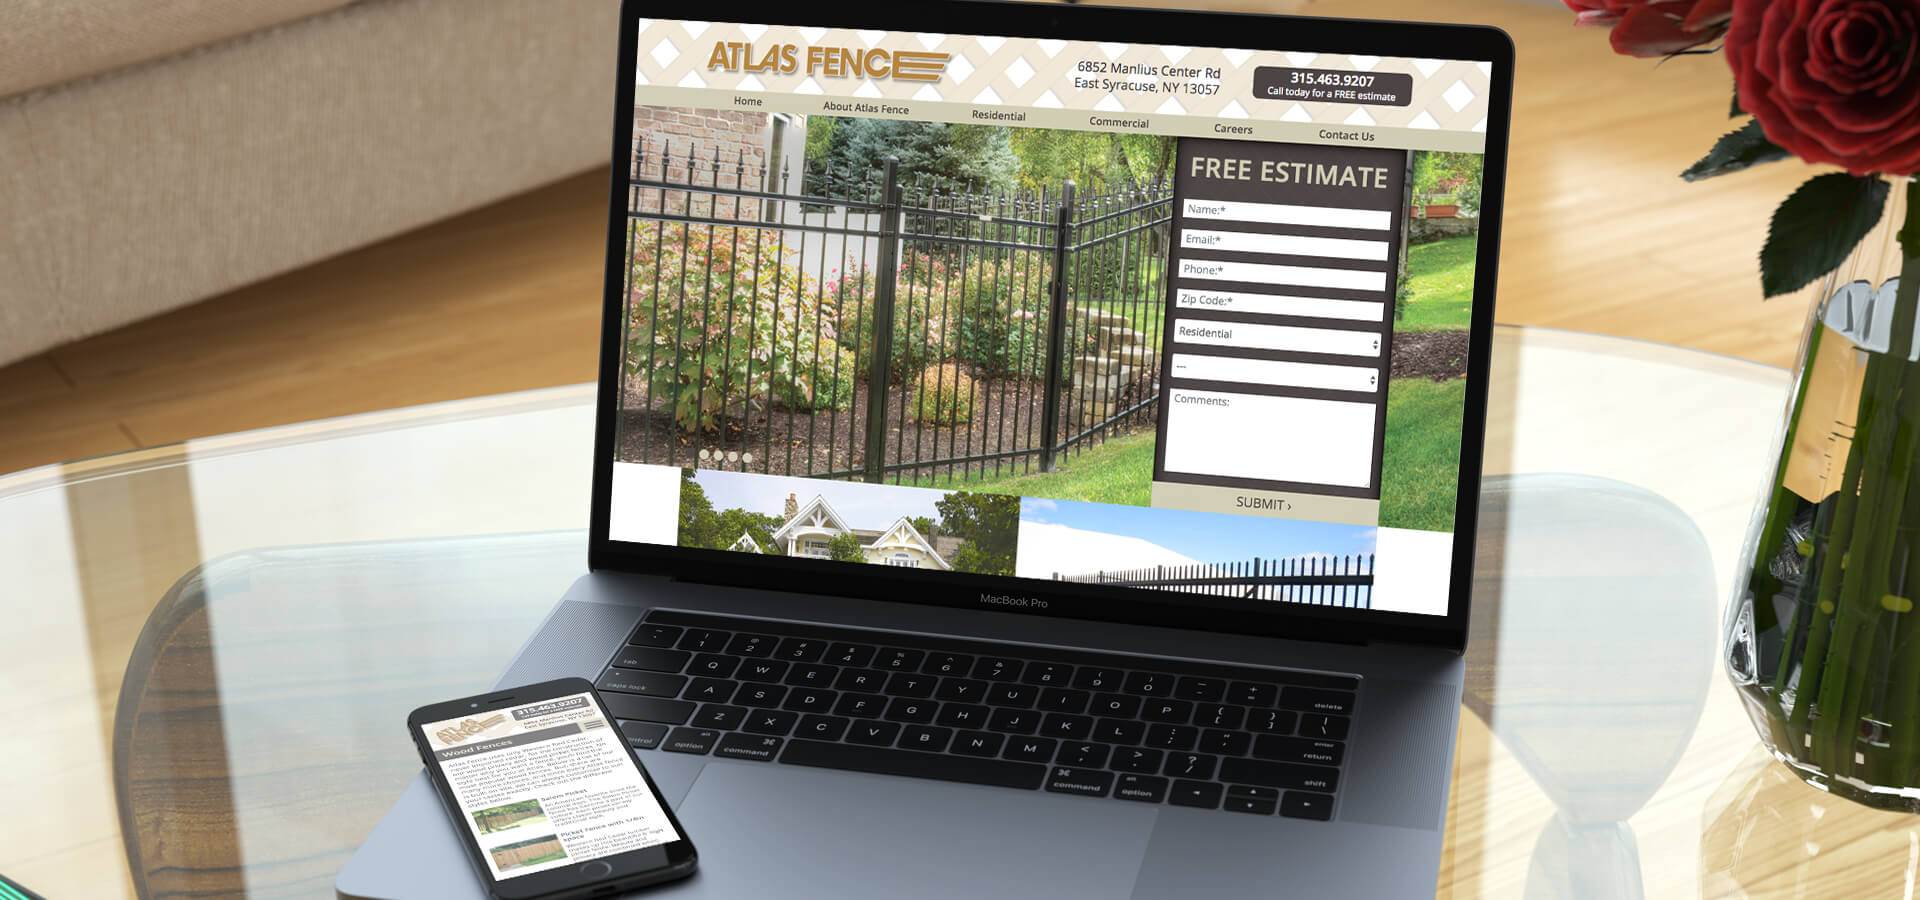 Atlas Fence Responsive Website Laptop and Mobile Phone